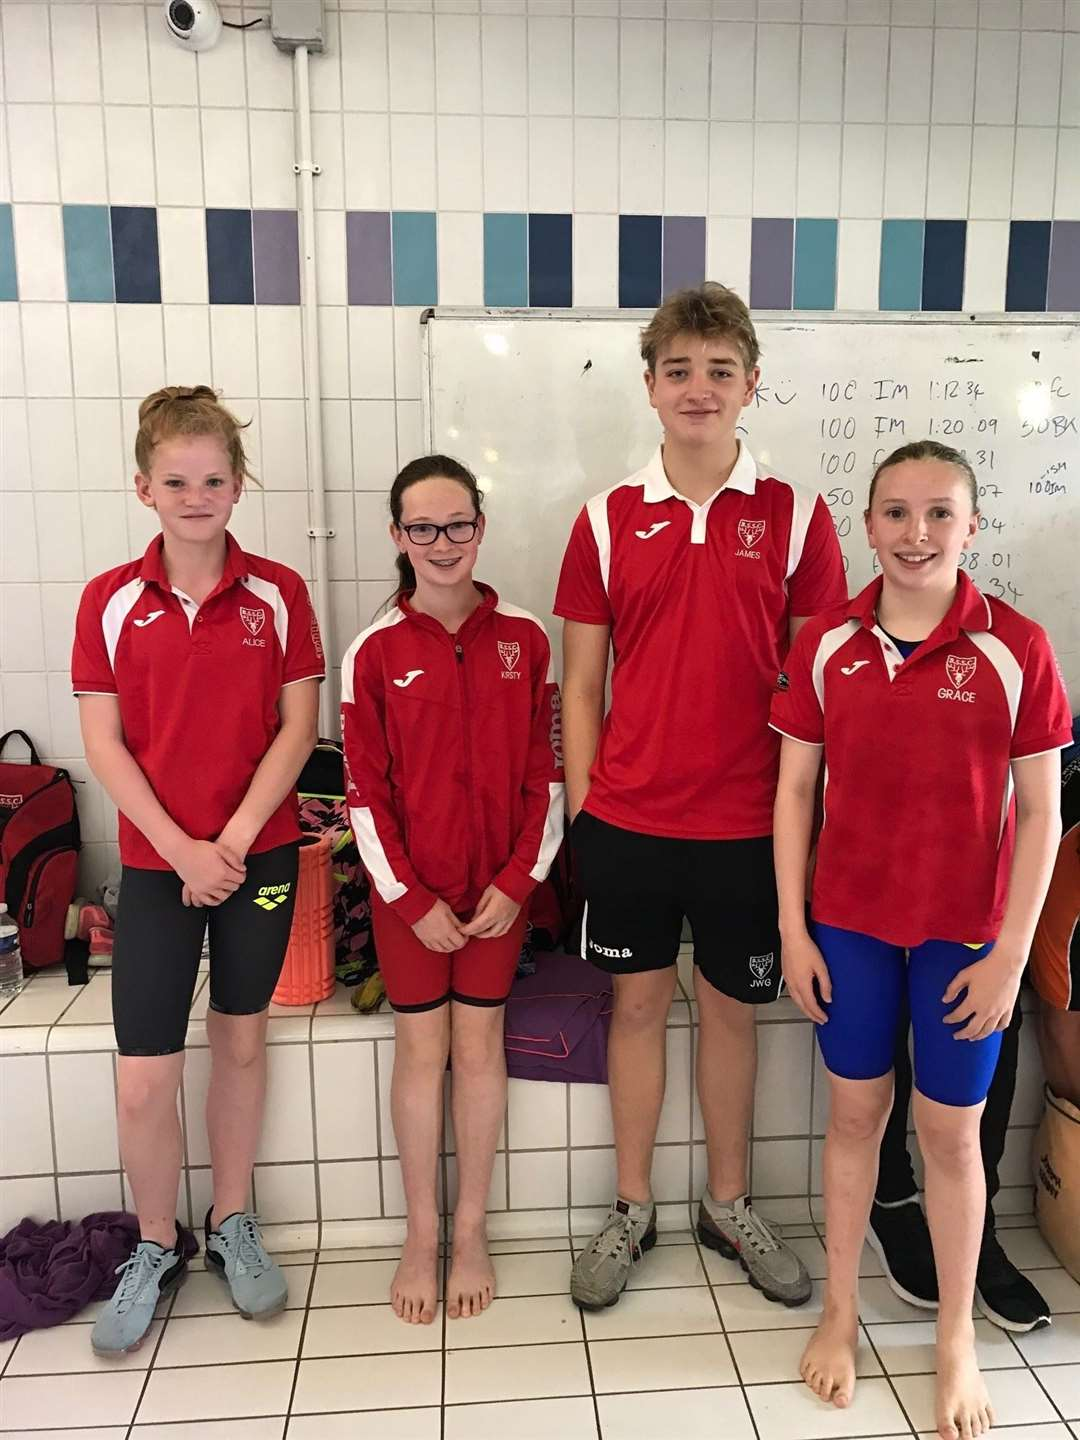 Bishop's Stortford Swimming Club. From left, Alice Longman, Kirsty Neill, James Gisborne and Grace Mason. (12883722)